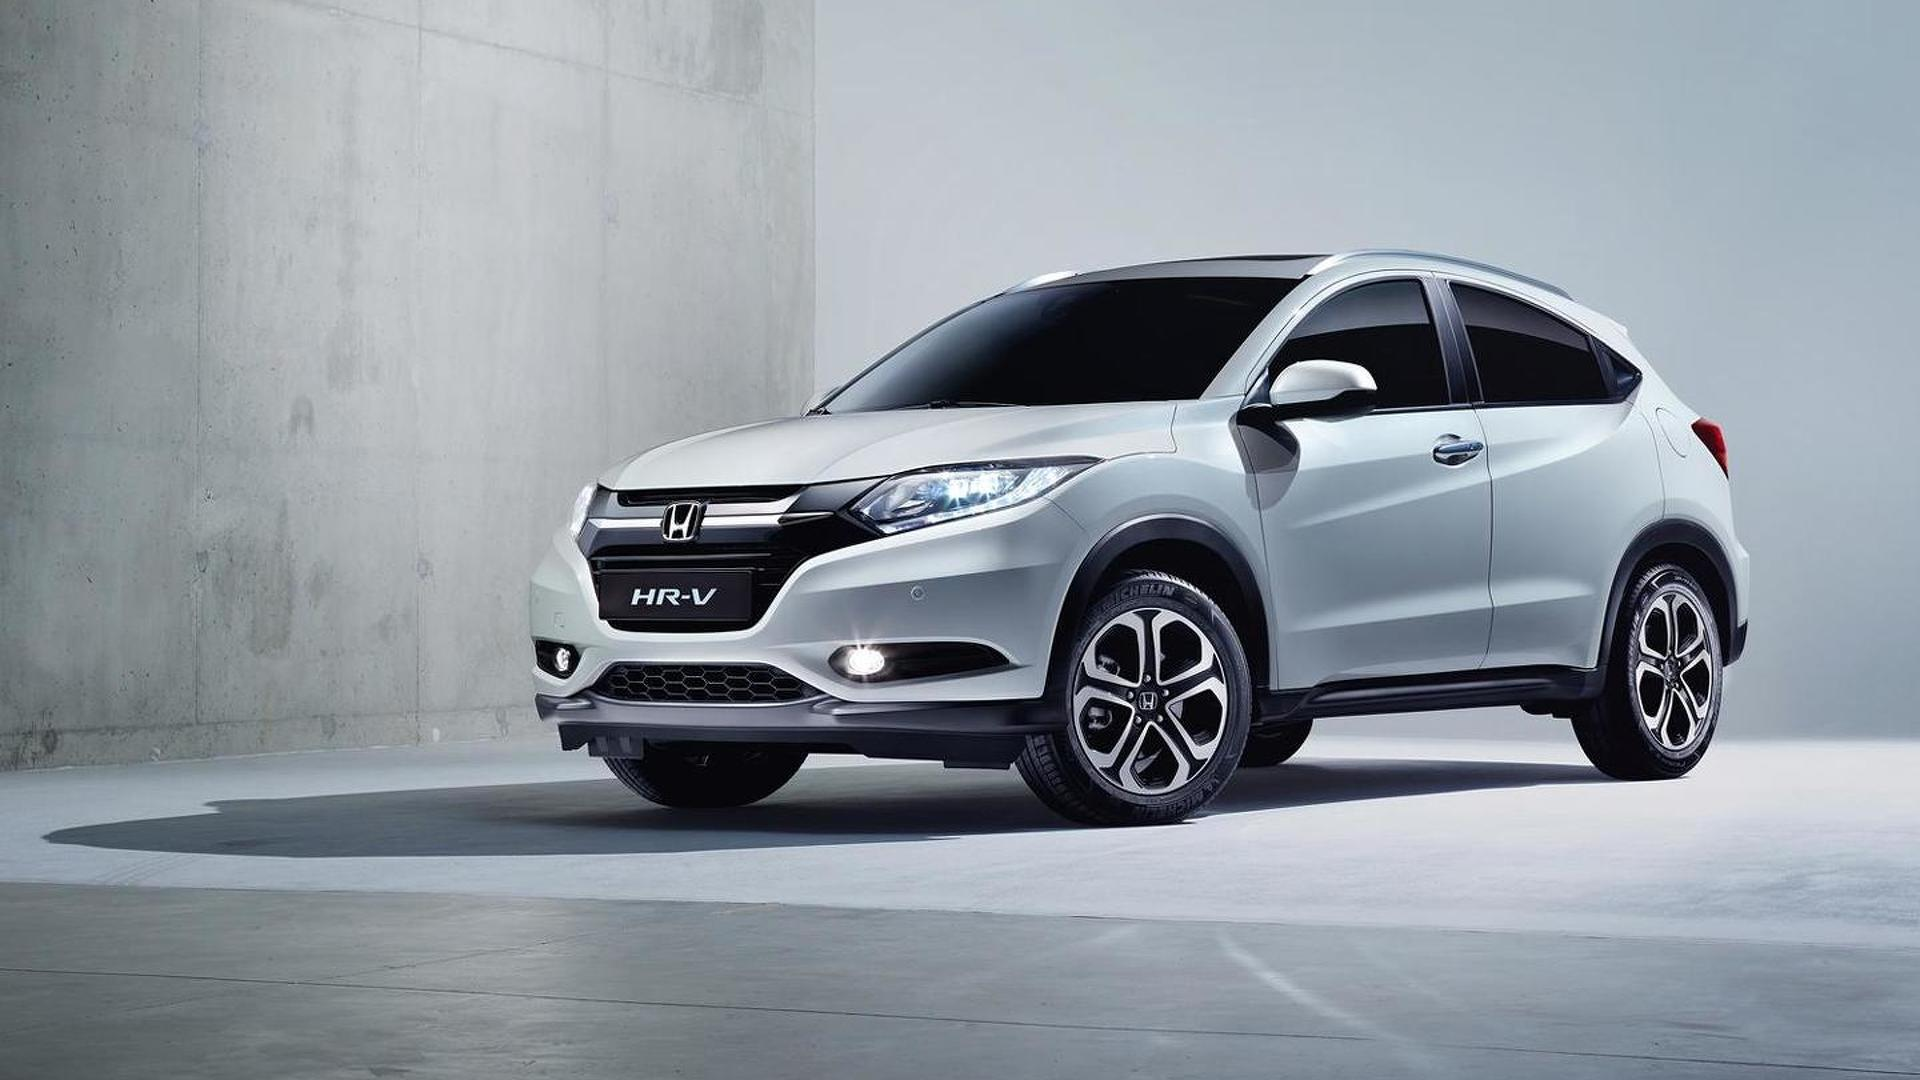 2015 Honda HR-V revealed in European specification